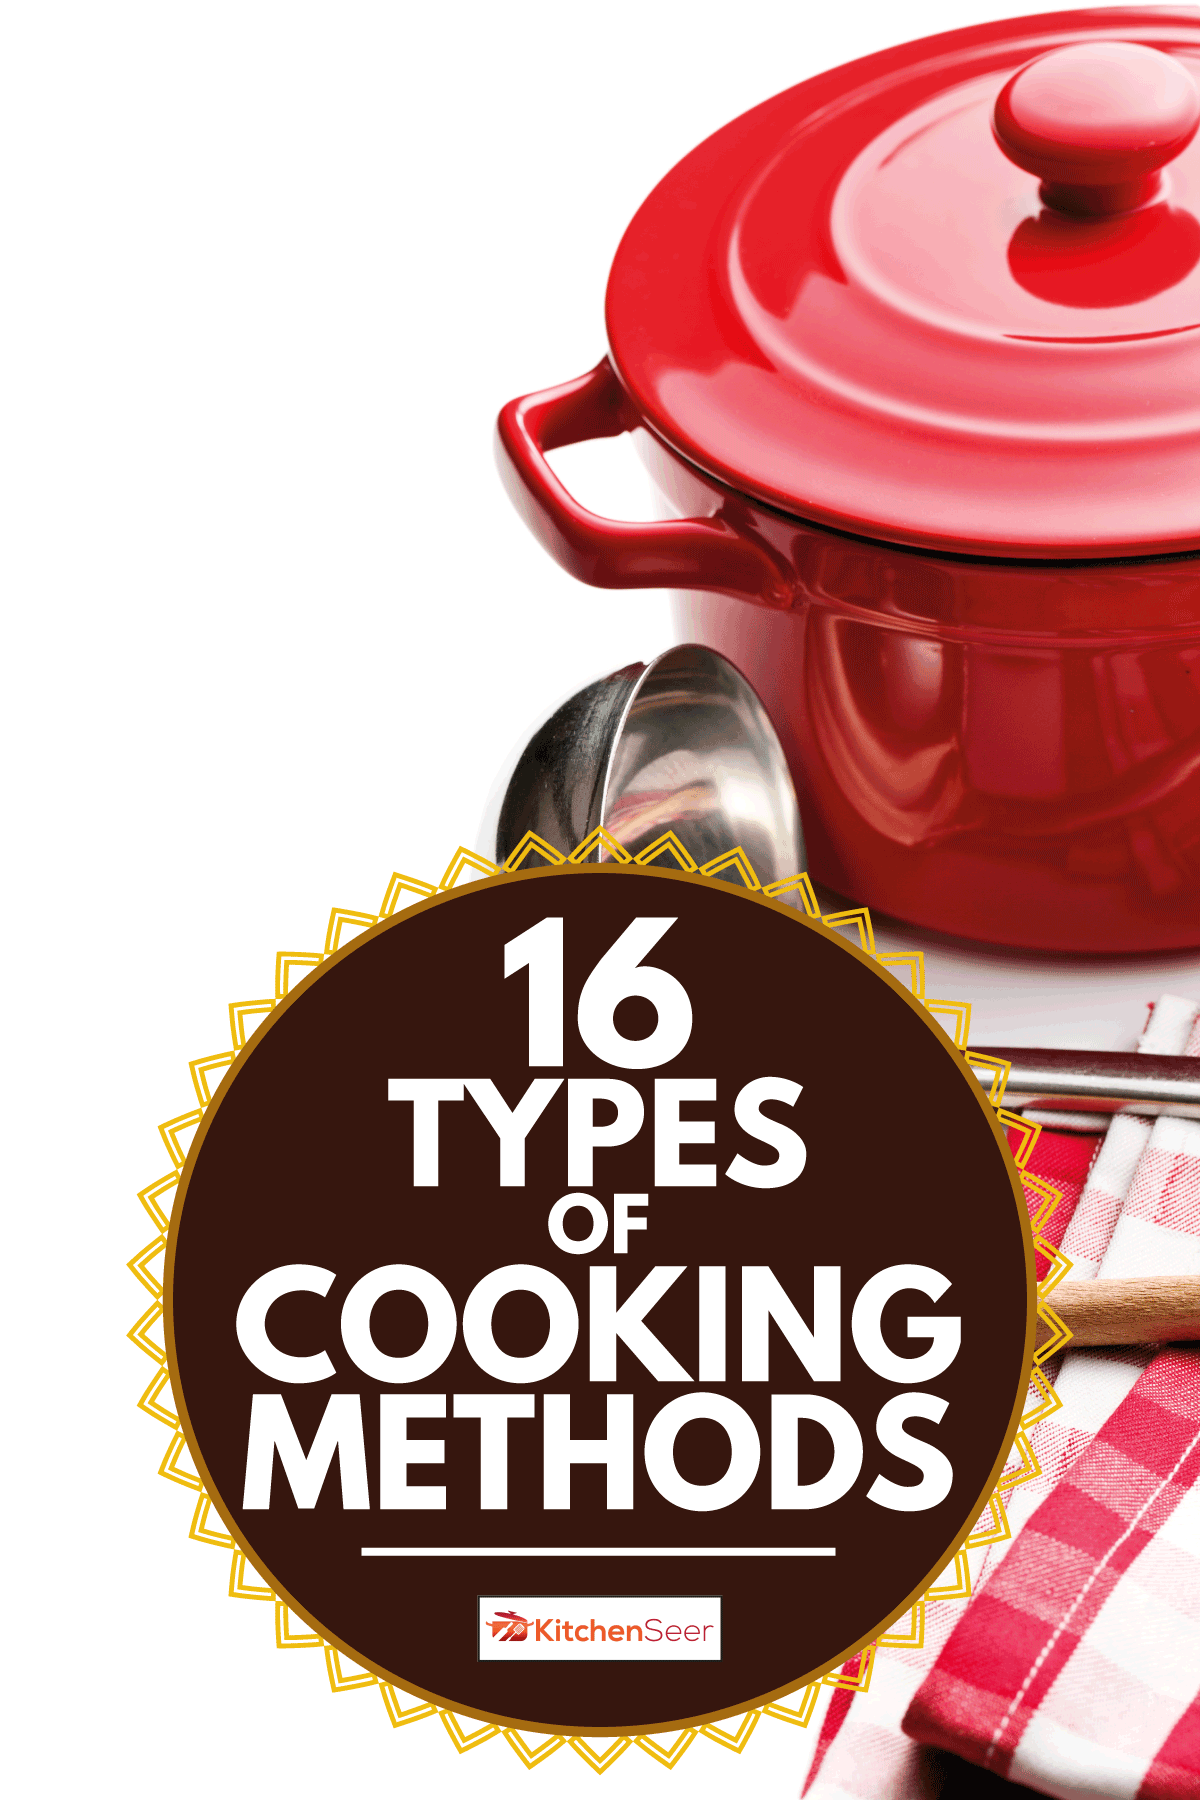 Kitchenware on white background, 16 Types Of Cooking Methods